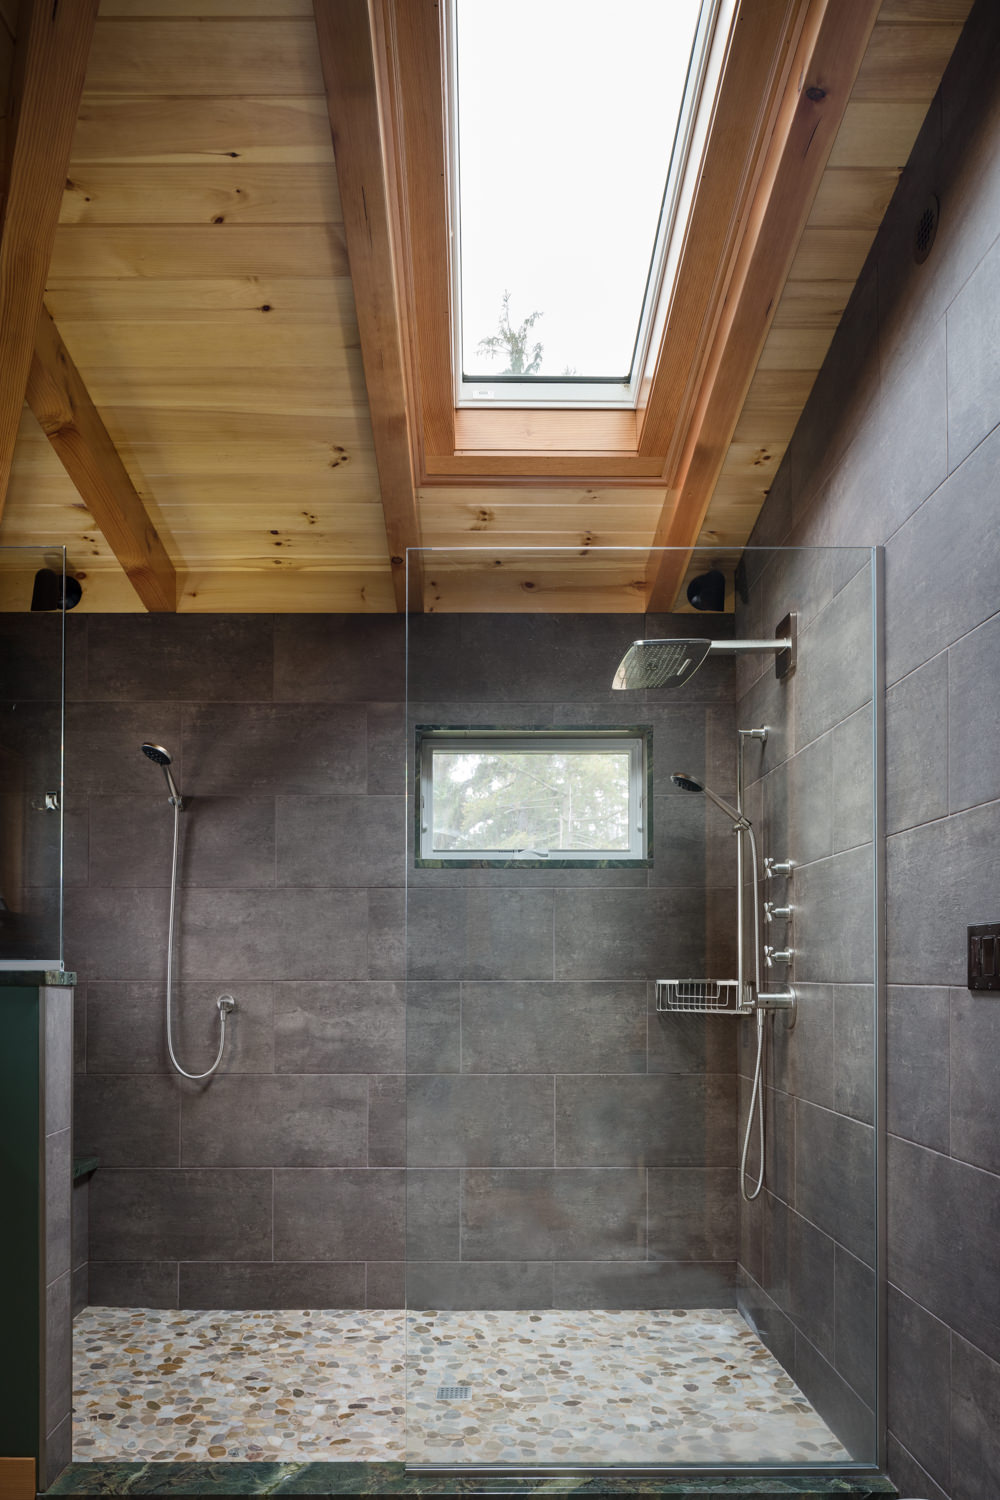 Interior architecture photo of a slate tiled walk-in shower in the master bath of a renovation by Wiemann Lamphere Architects and photographed by Vermont photographer Stina Booth of Studio SB.,